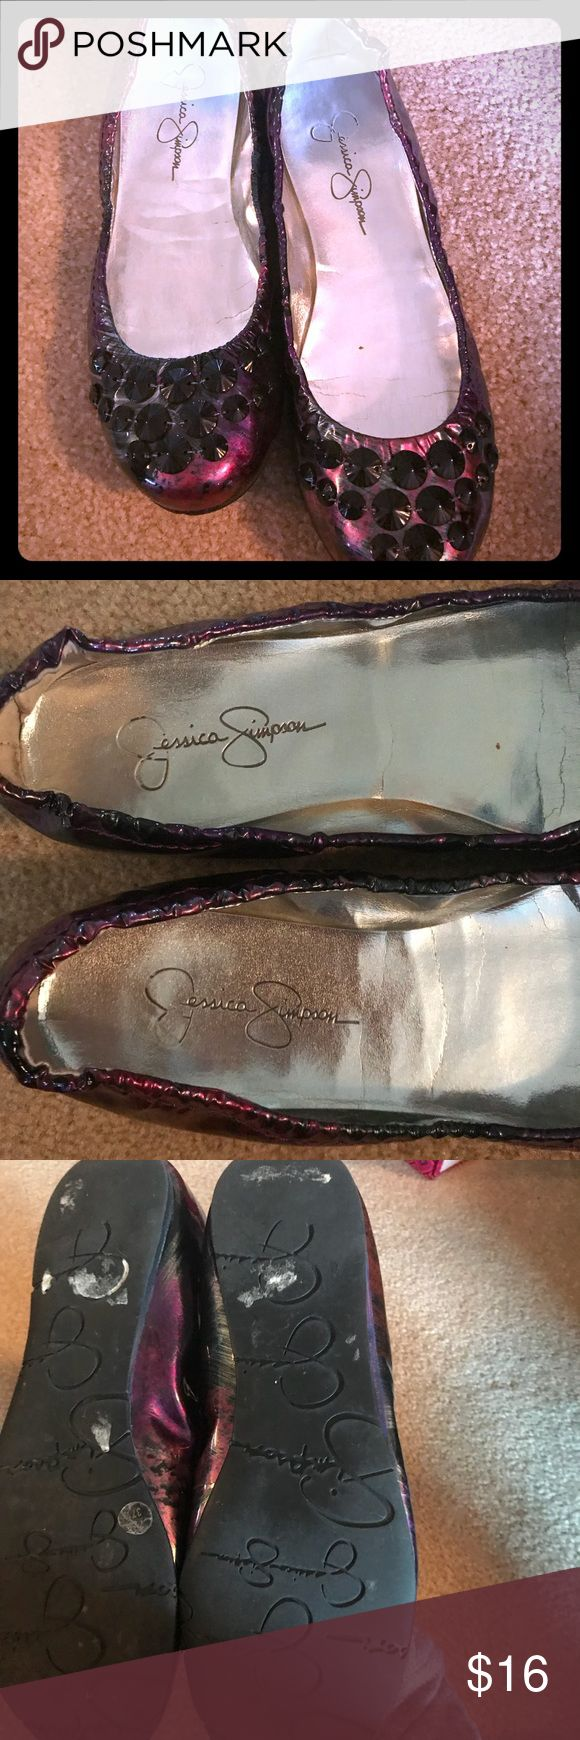 Jessica Simpson Flats—gently loved! Purple, pink & gunmetal all in a great shiny patent look with gunmetal grommets! Jessica Simpson Shoes Flats & Loafers